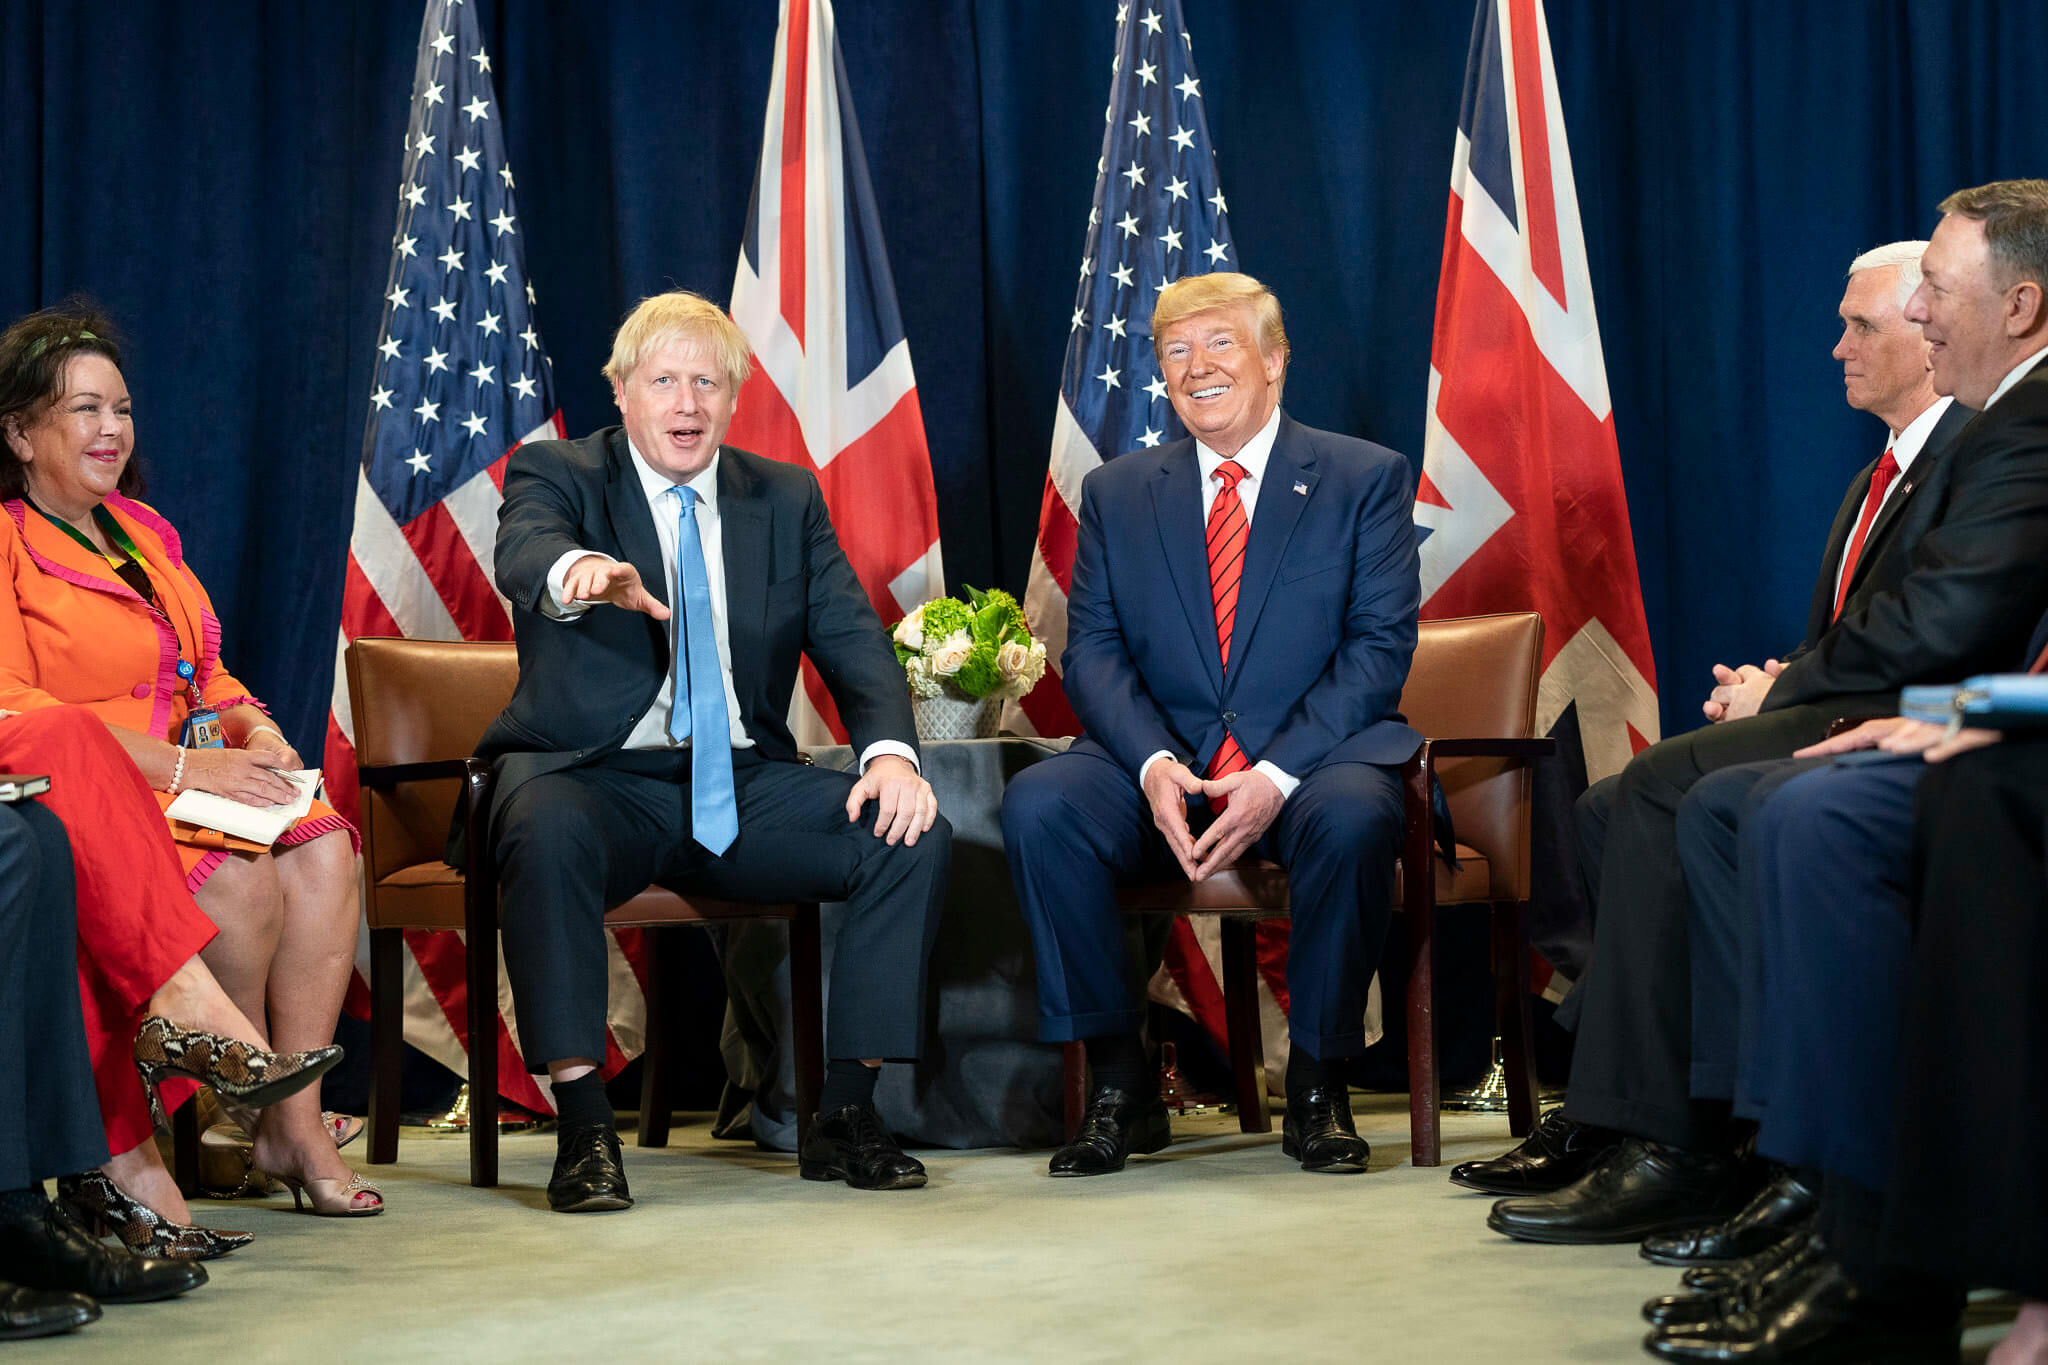 President Donald J. Trump participates in a bilateral meeting with British Prime Minister Boris Johnson in 2019. © The White House